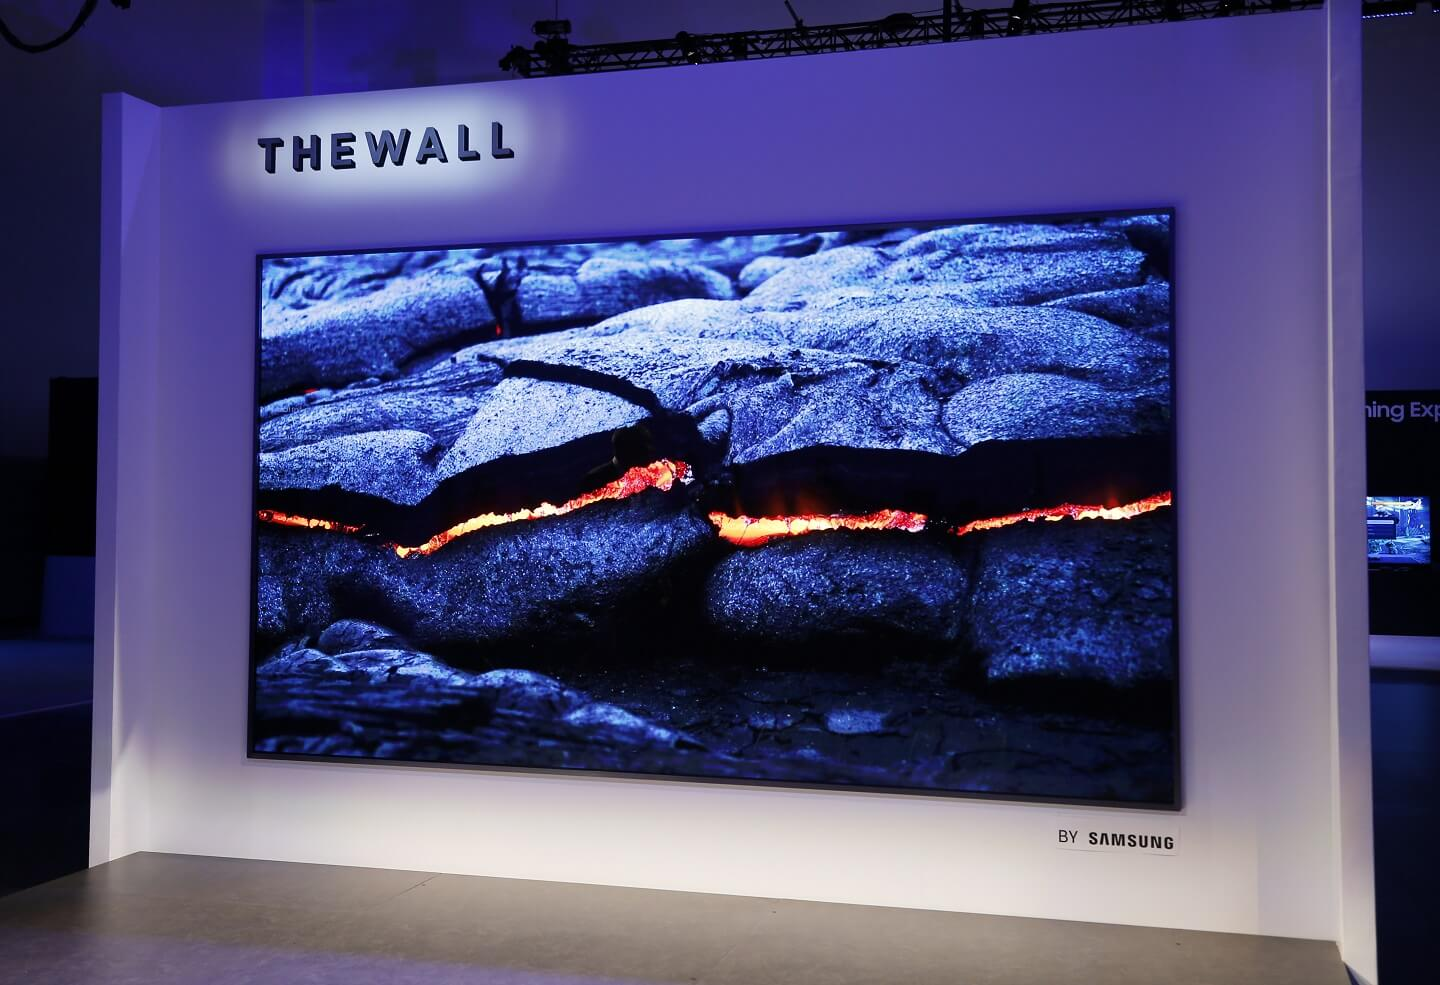 ONE OF THE MOST TRENDING GADGETS FOR HOME : SAMSUNG - THE WALL